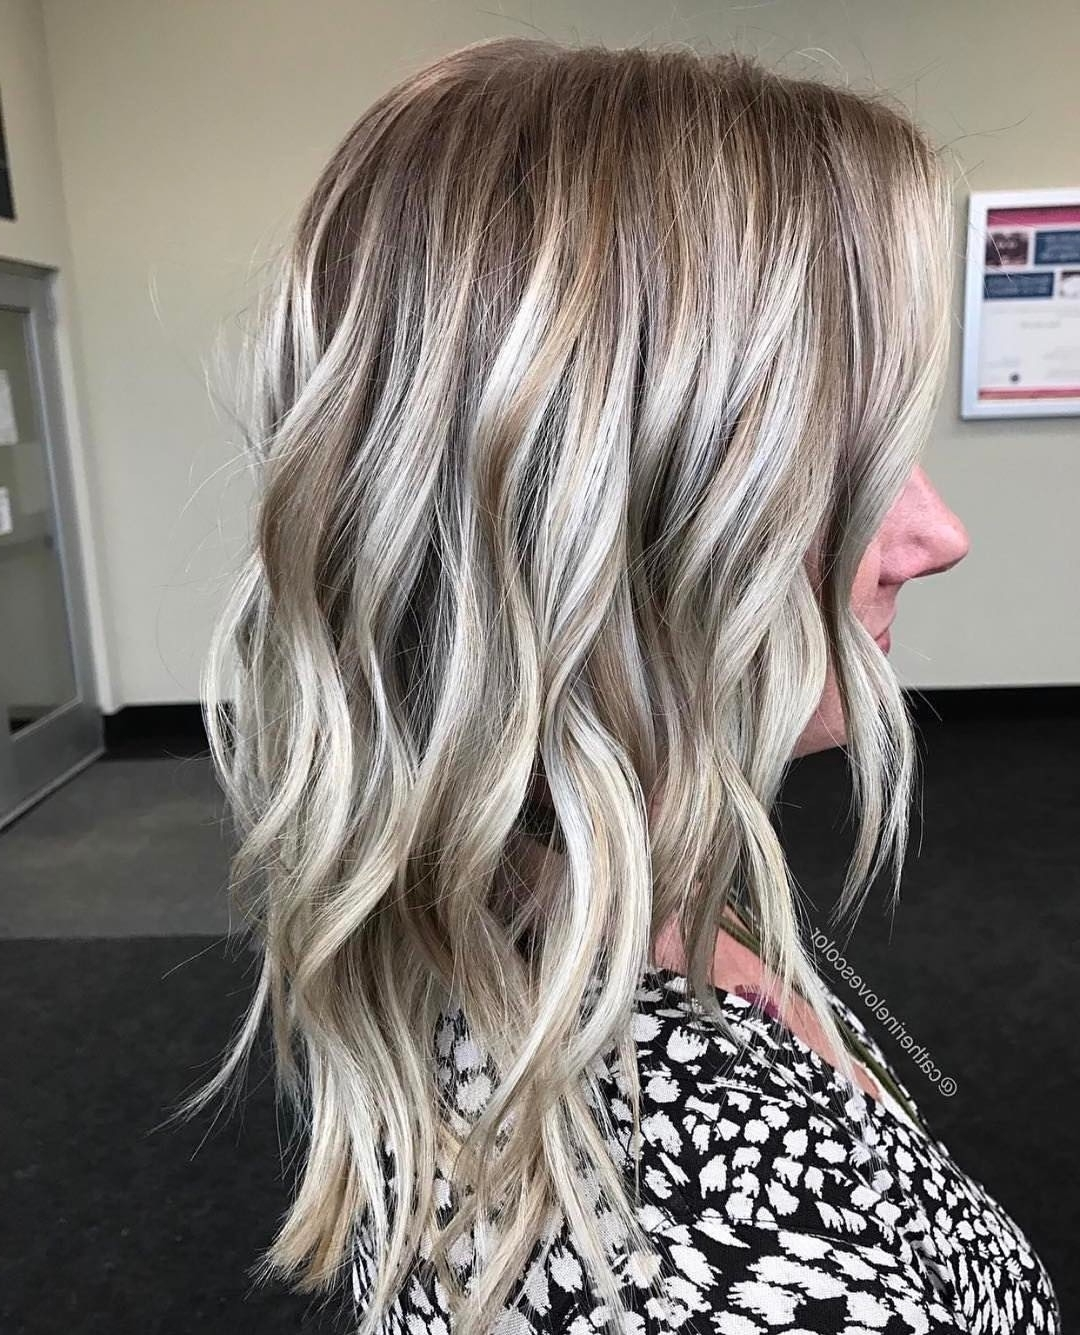 Newest Dirty Blonde Balayage Babylights Hairstyles Inside 20 Adorable Ash Blonde Hairstyles To Try: Hair Color Ideas  (View 16 of 20)